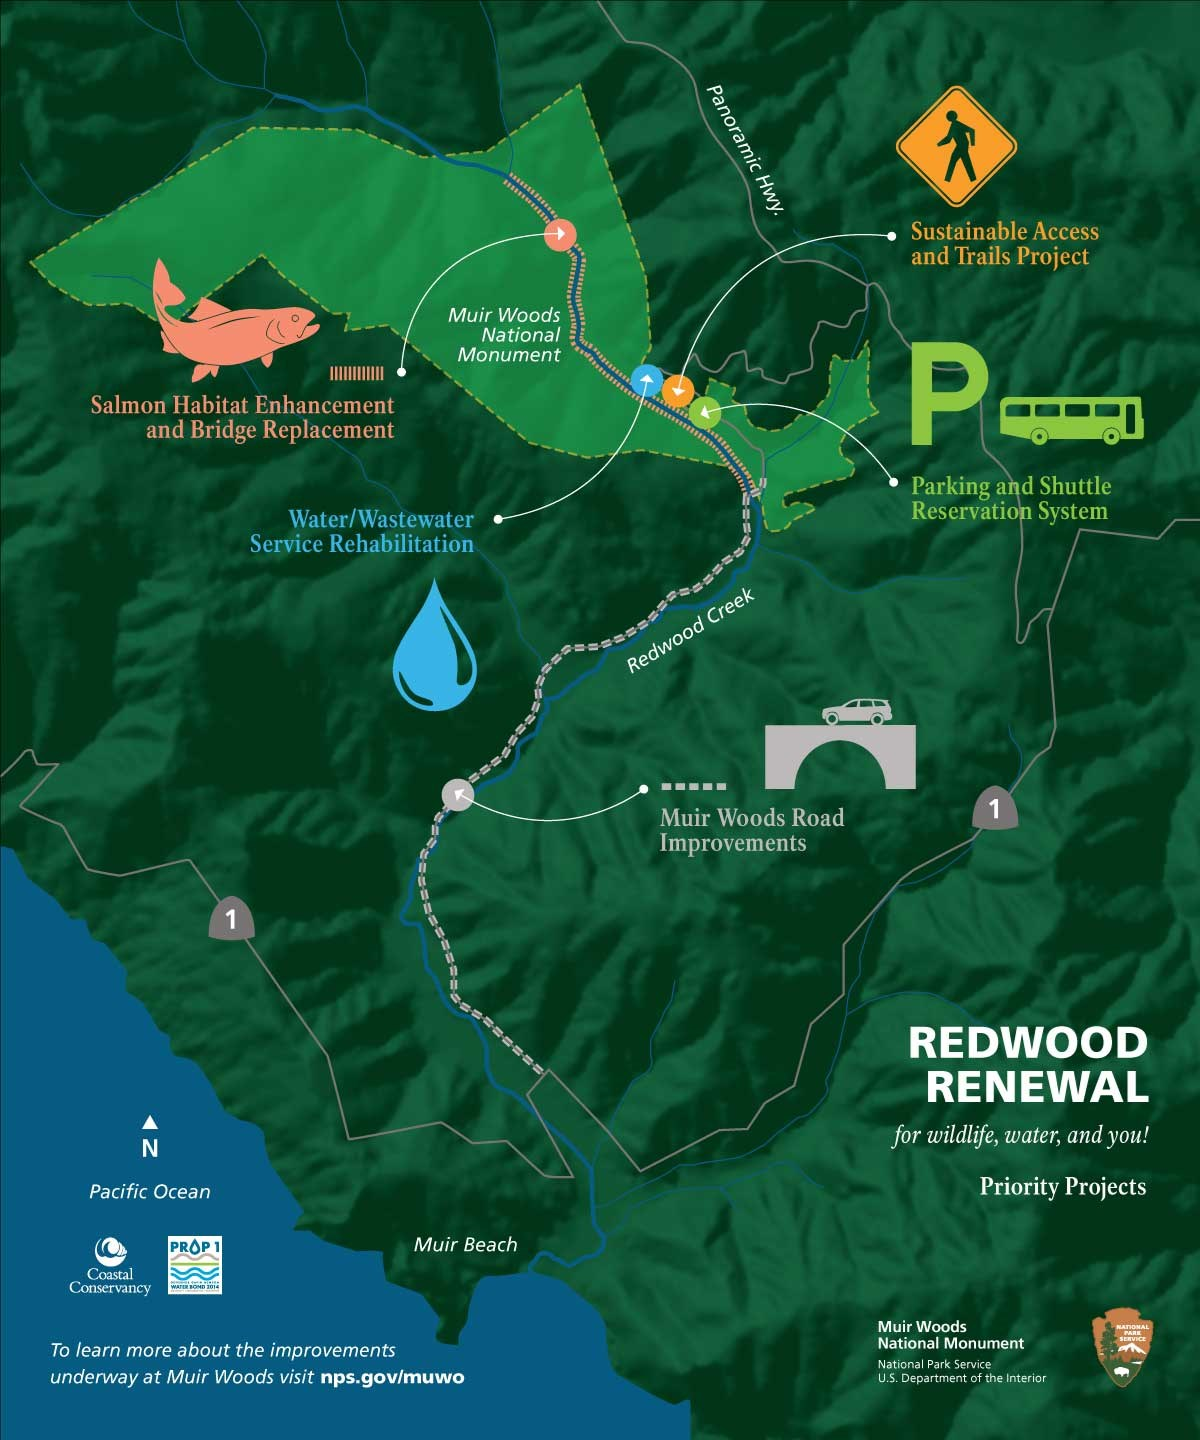 Map of Redwood Renewal Projects